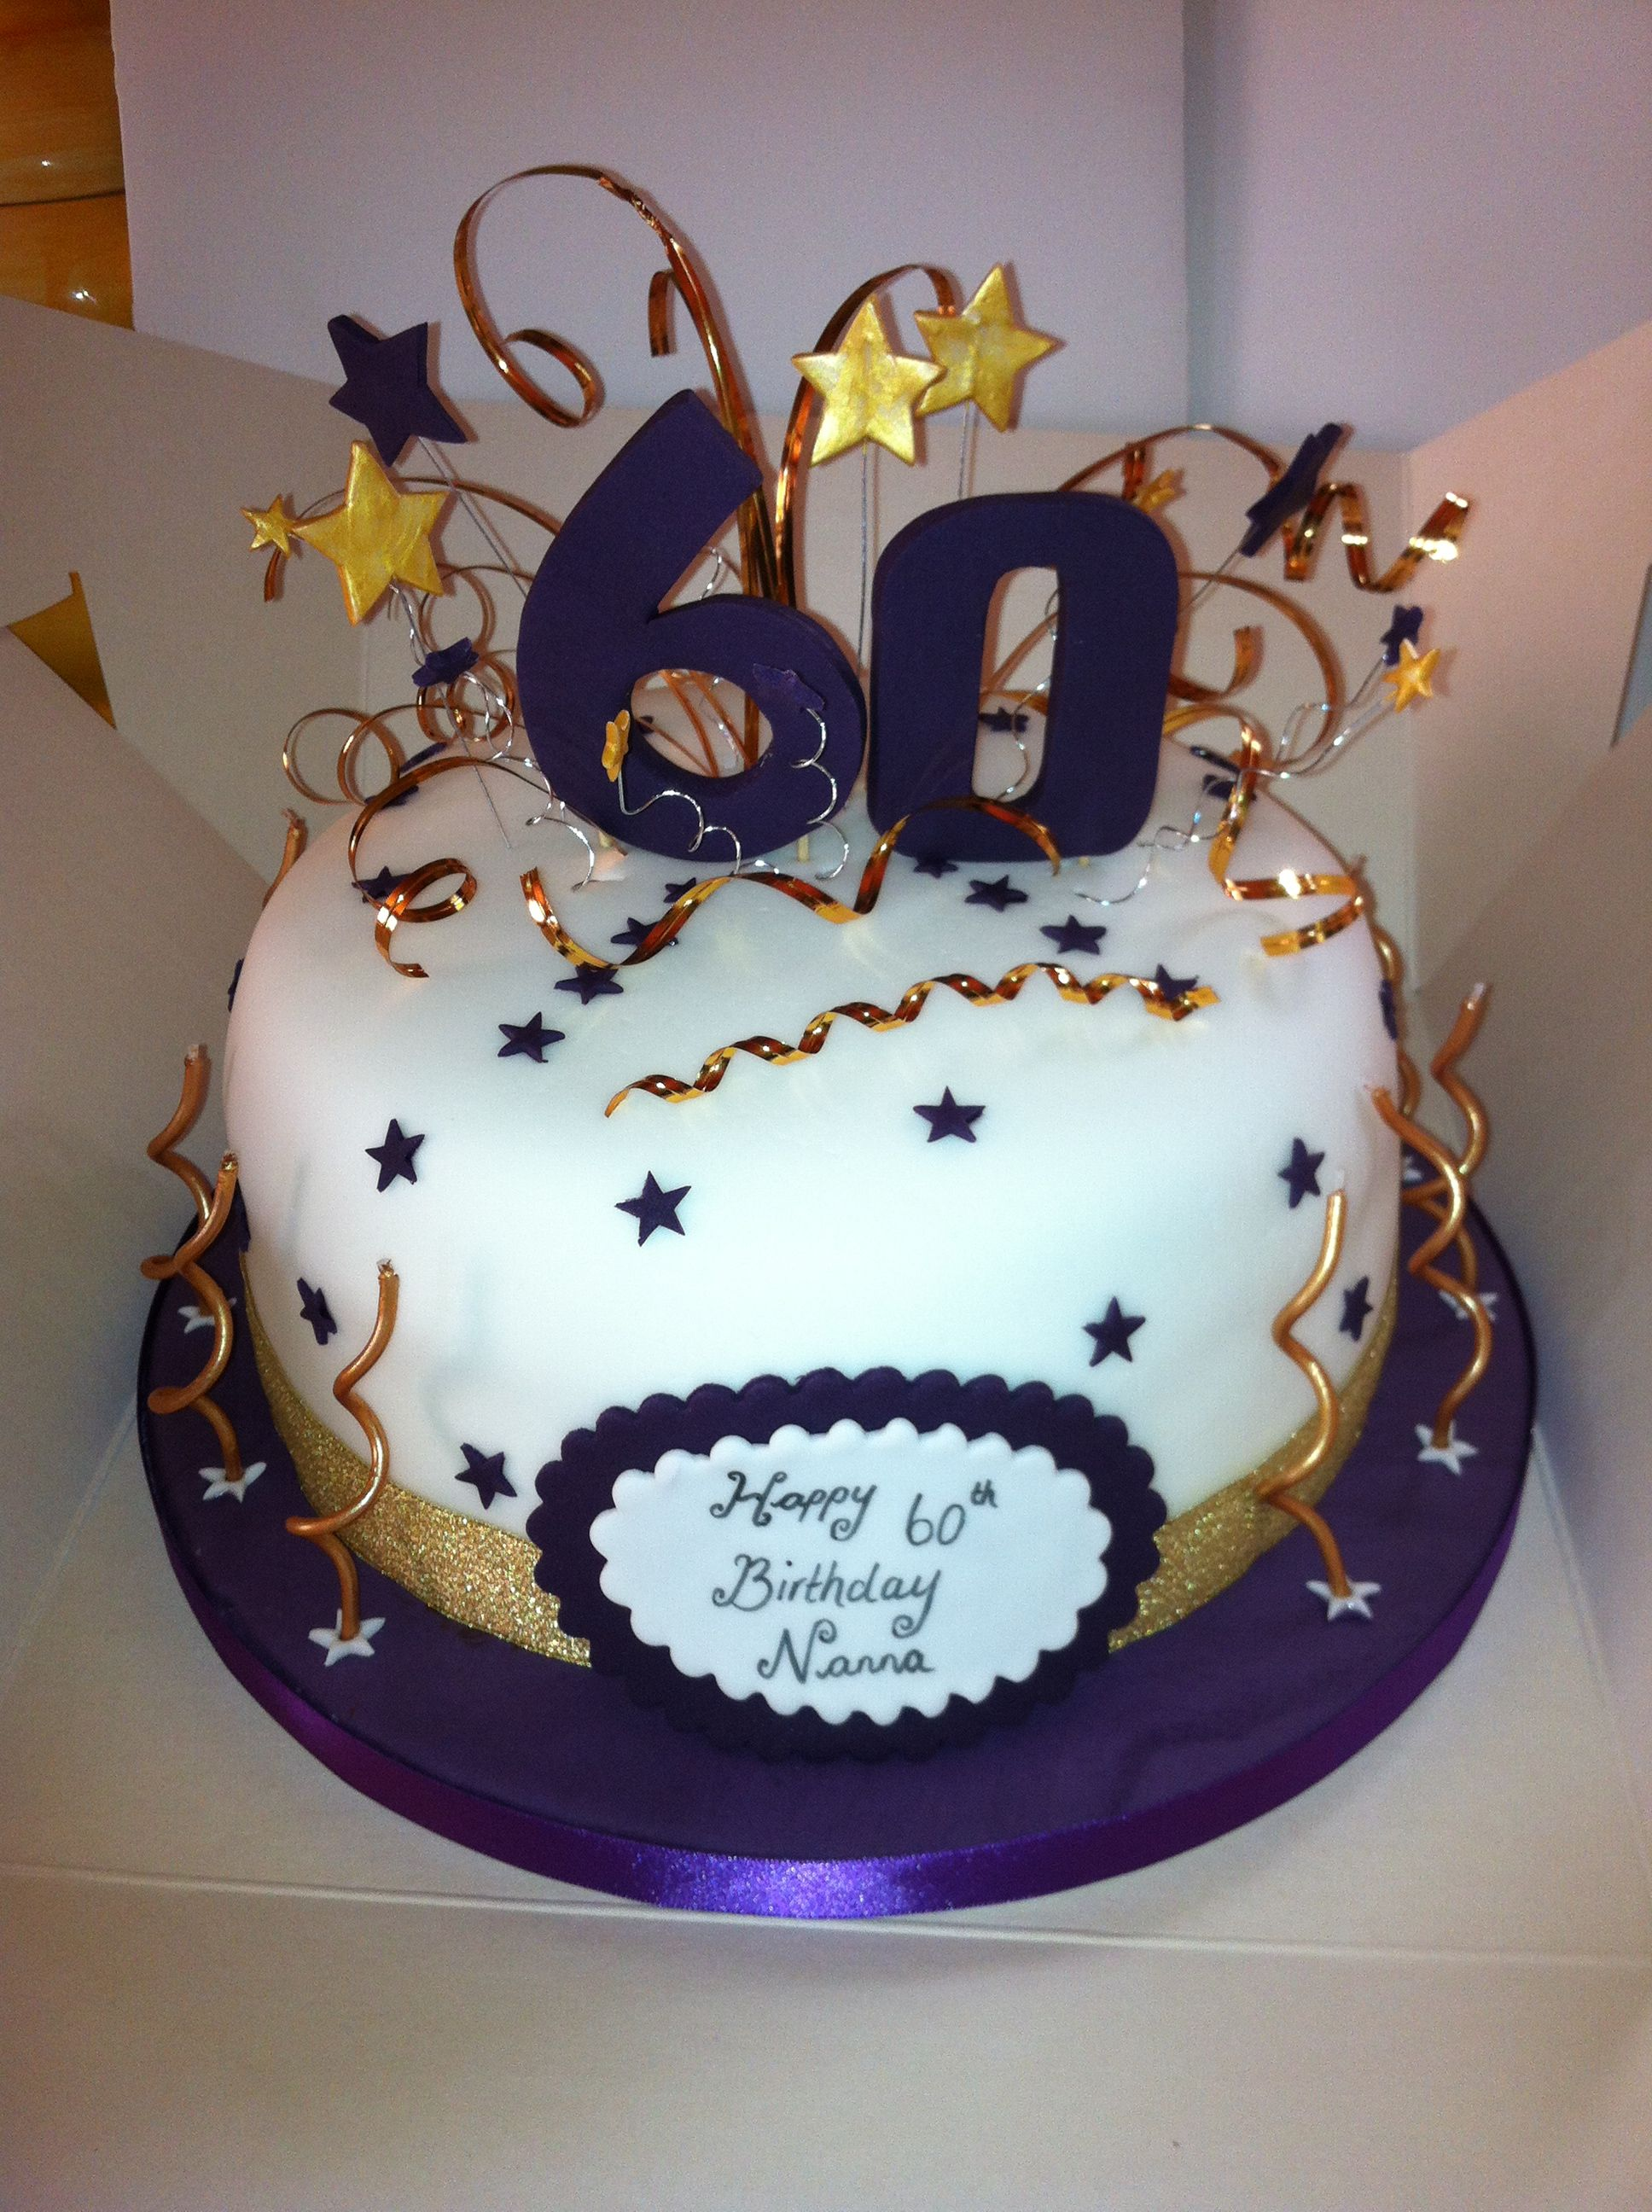 And Stunning Bithday Party Ideas 60th Birthday Cake